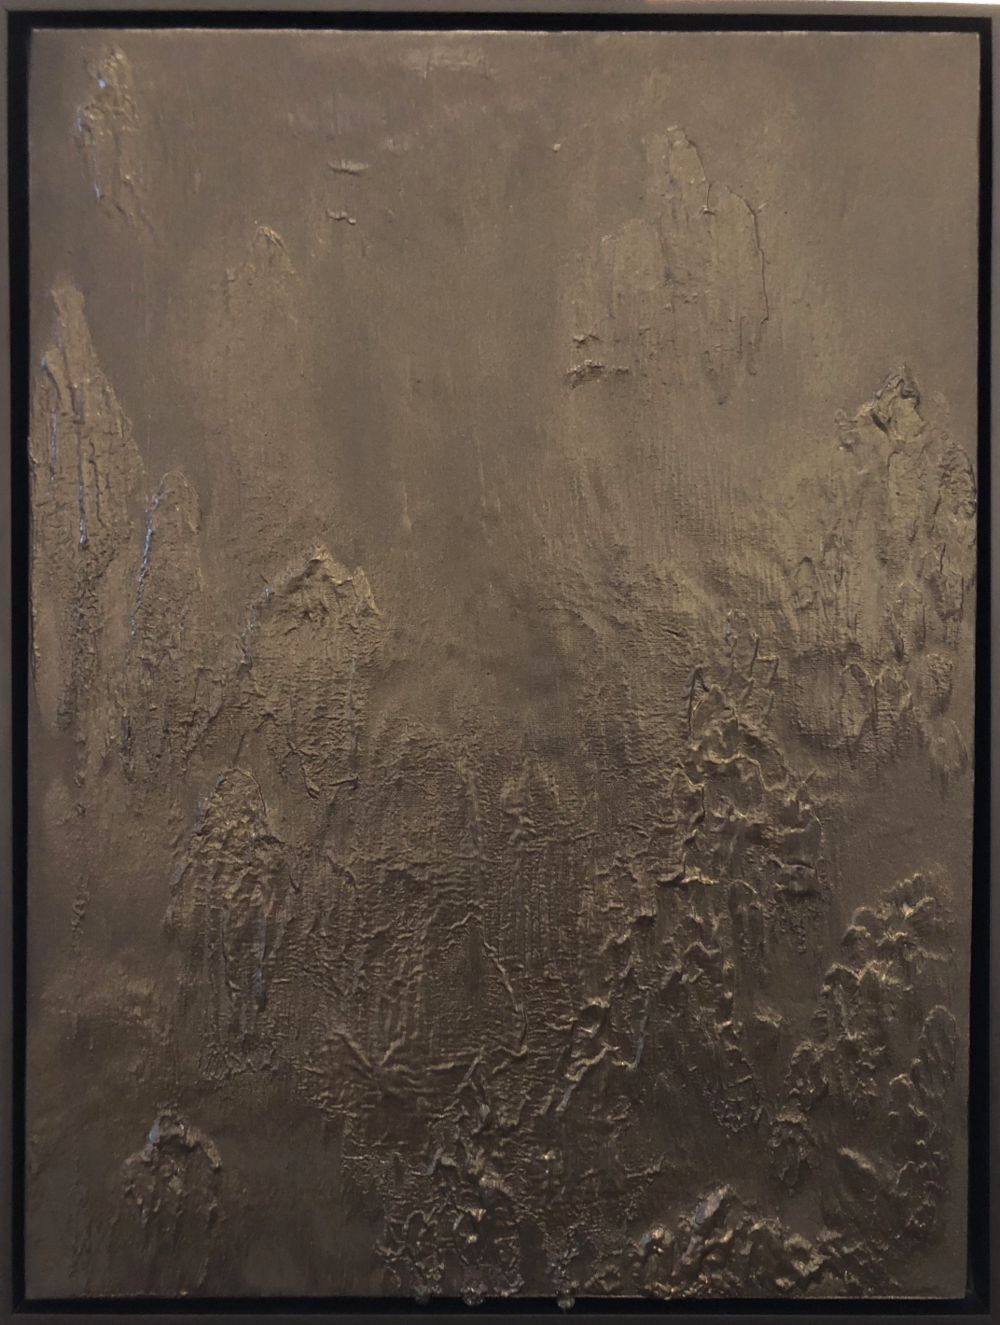 Matthew C. Metzger, American Darkness I  Oil, Iron & Bronze on Canvas, 25x19 in.